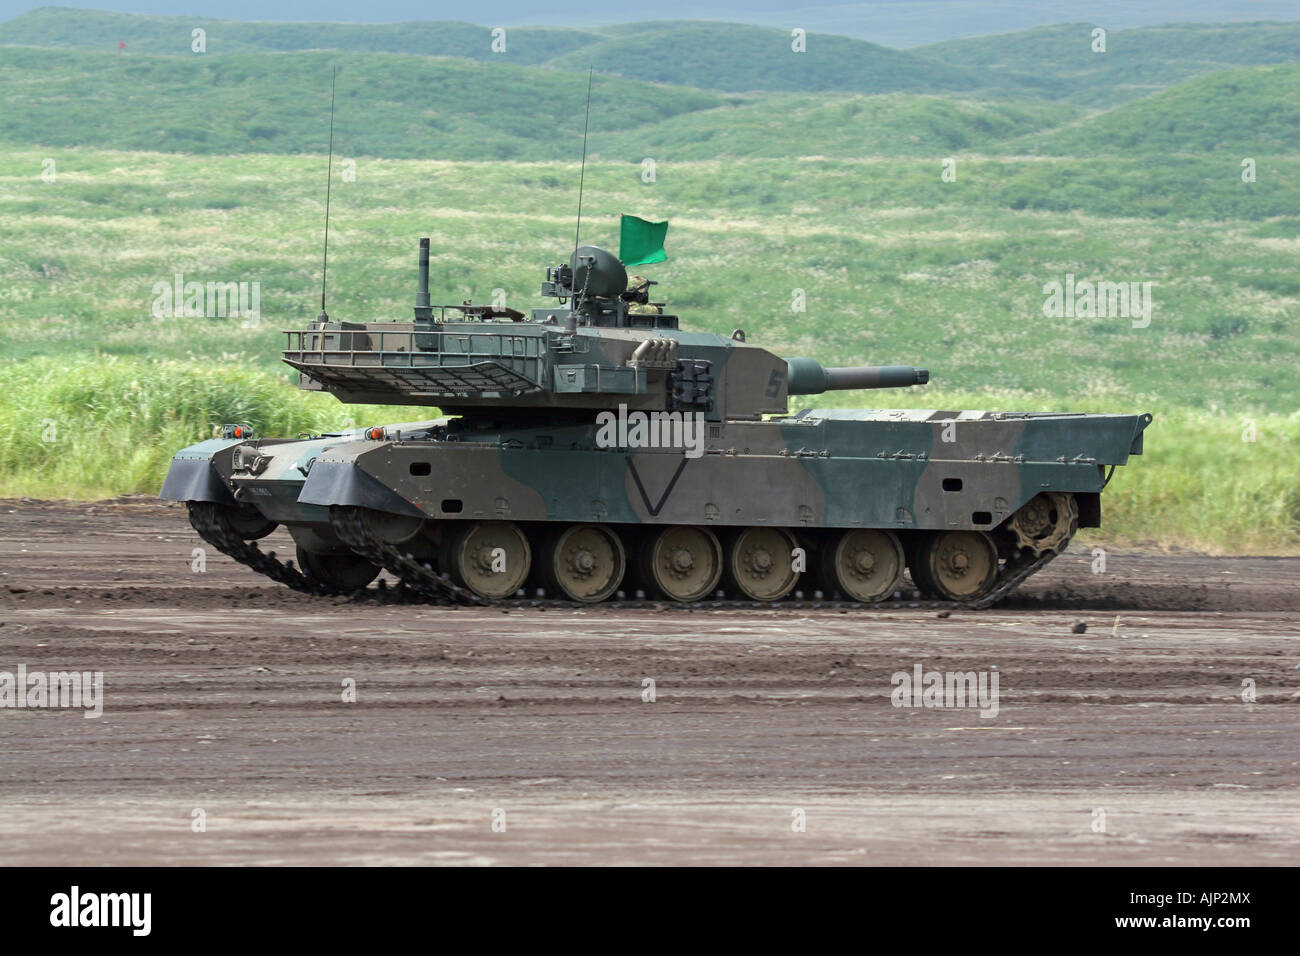 e6d57db4faad Mitsubishi Type 90 Main Battle Tank of the Japan Ground Self Defence Force